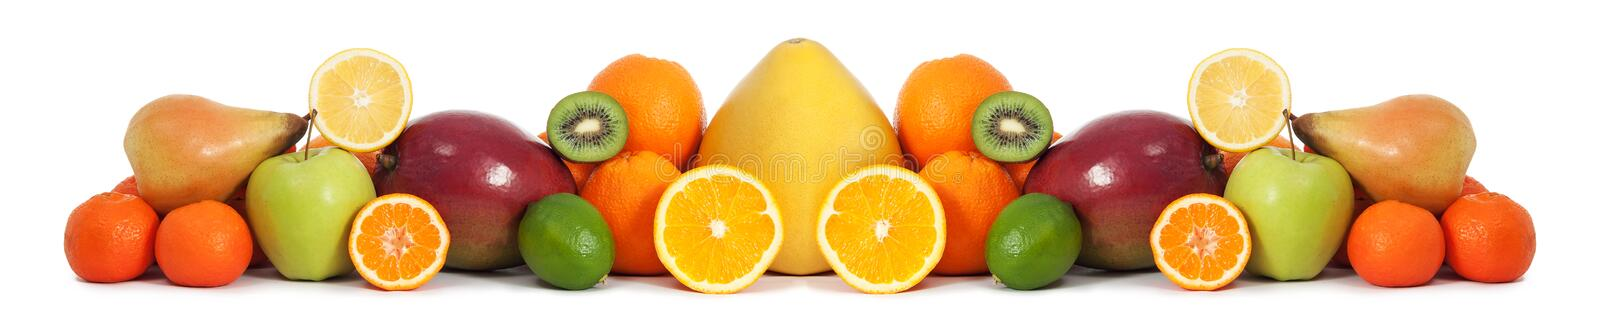 Food fruit banner royalty free stock photos